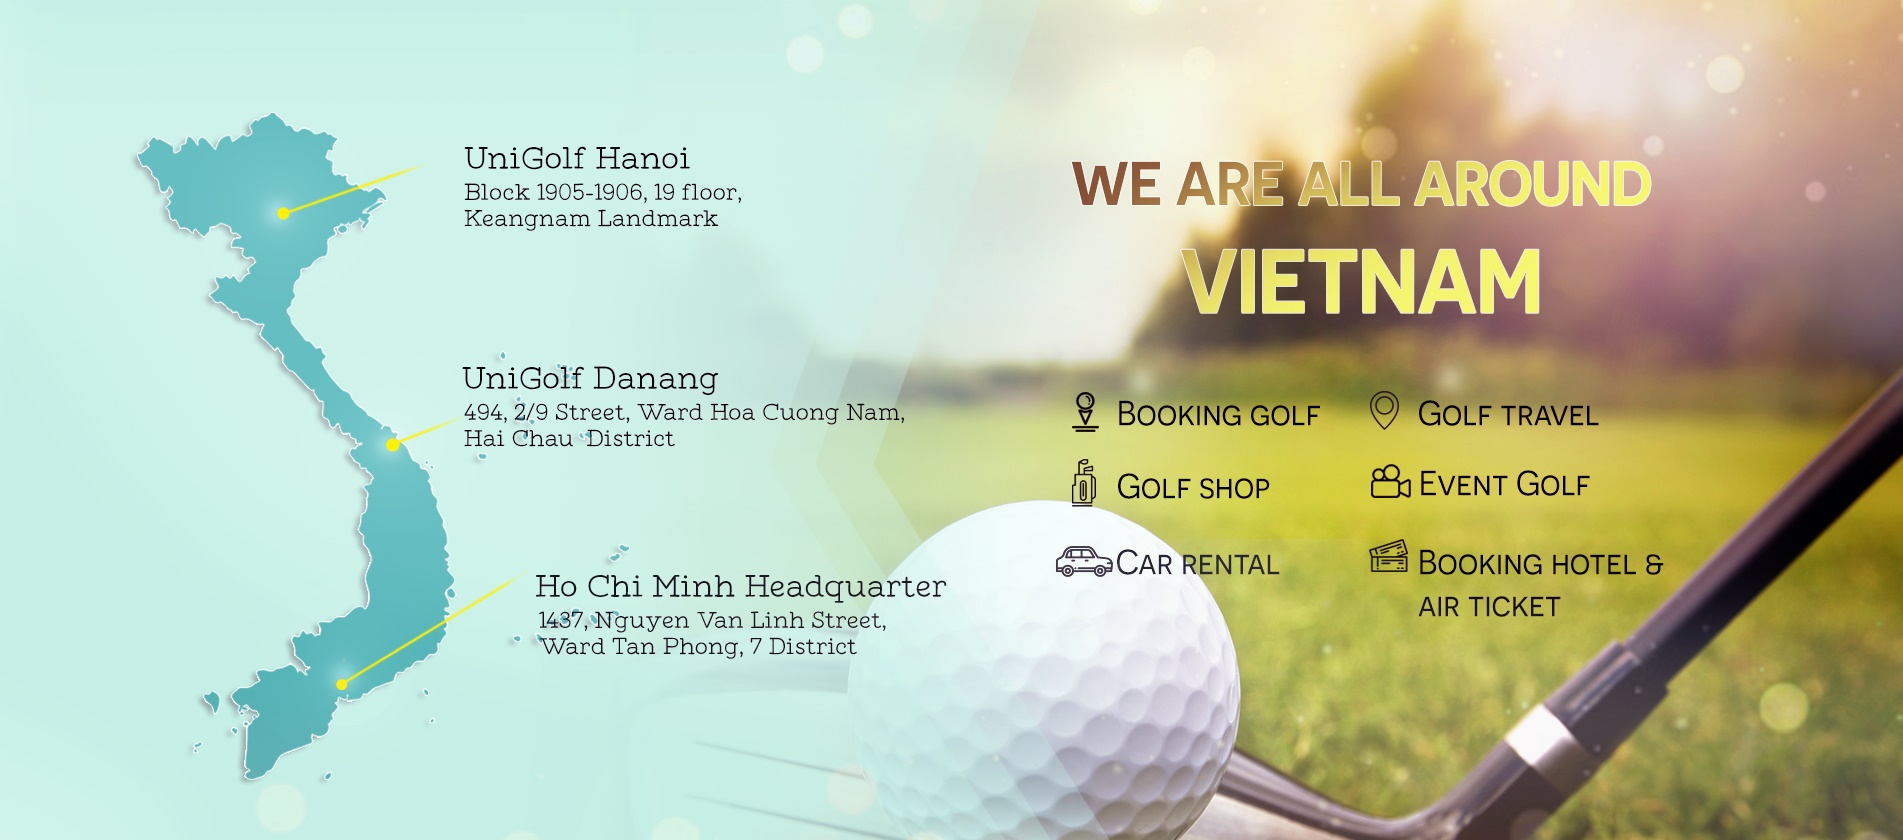 United Golf - JUST PLAY, WE HANDLE THE REST